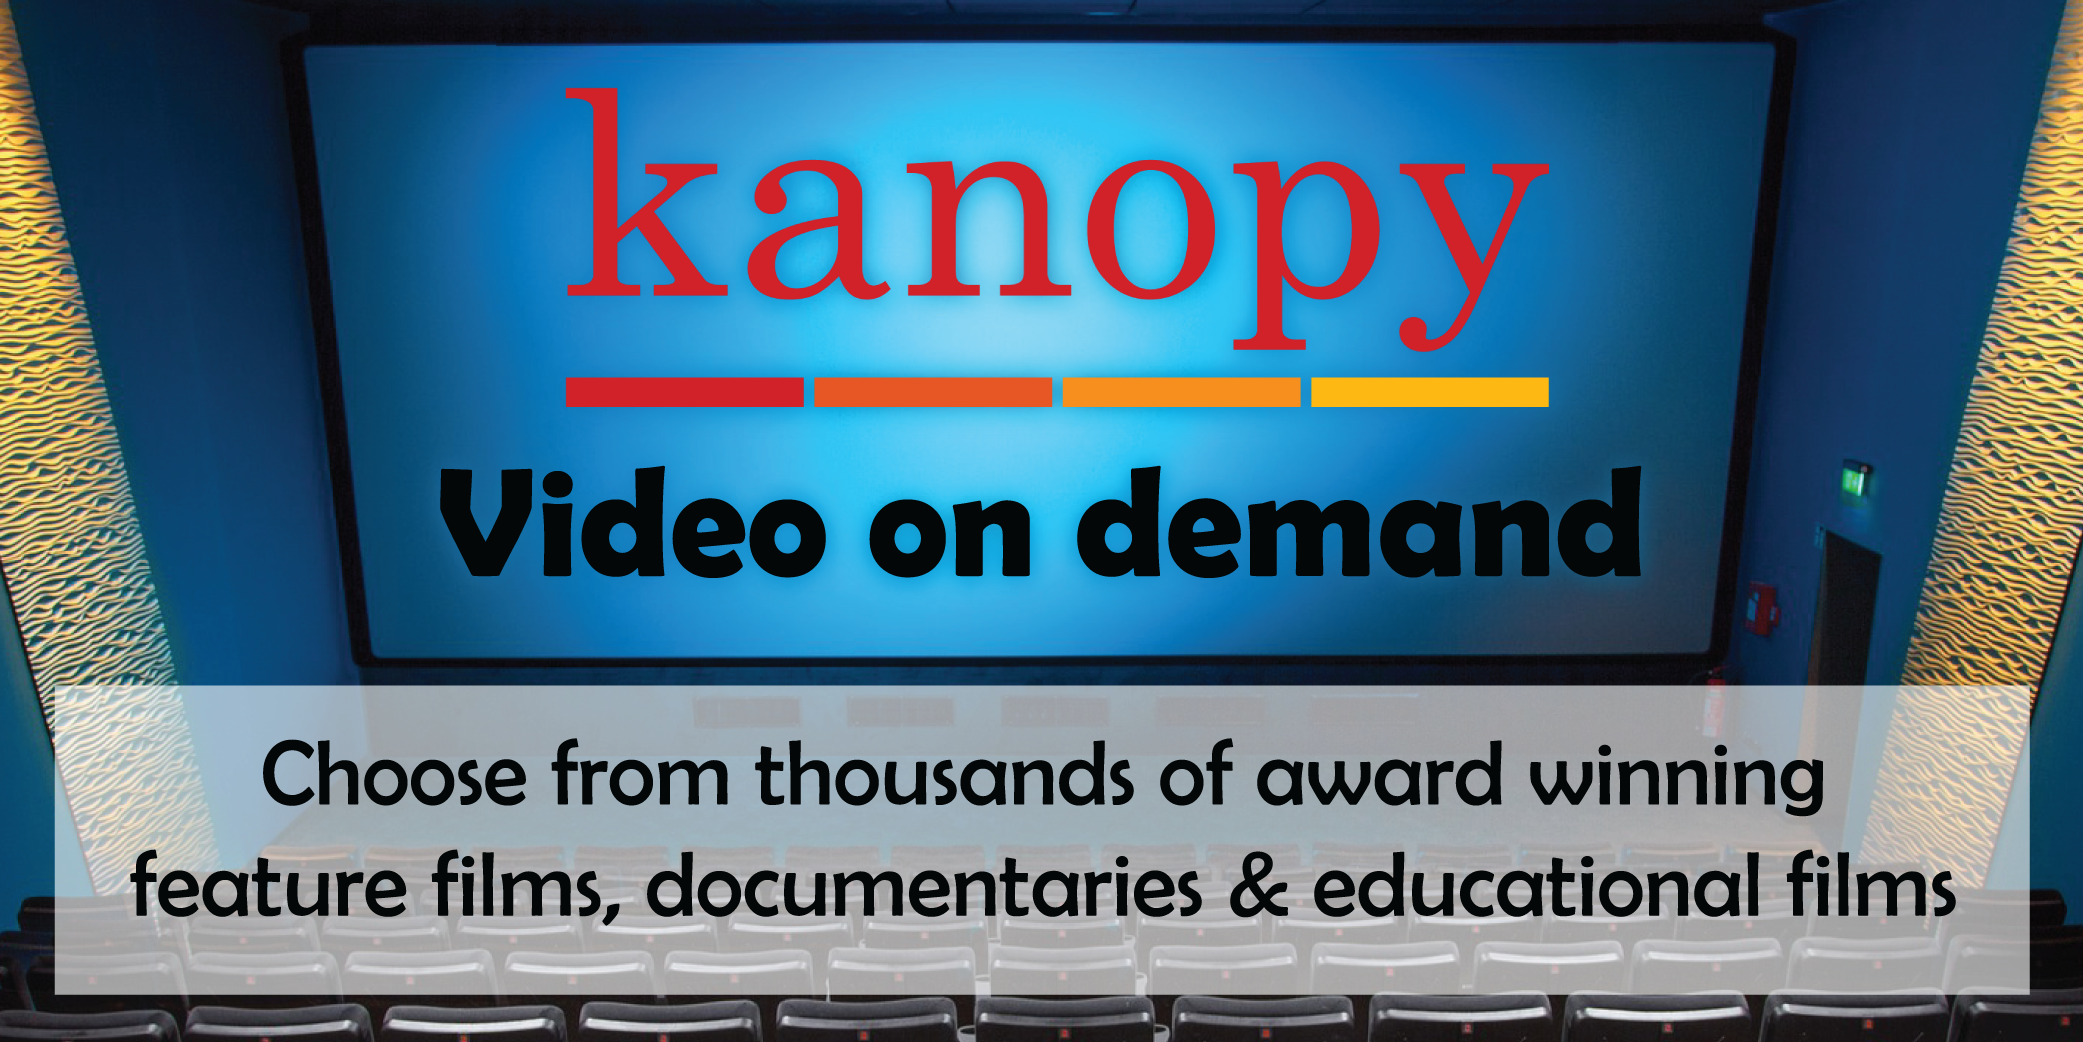 Kanopy videos on demand database